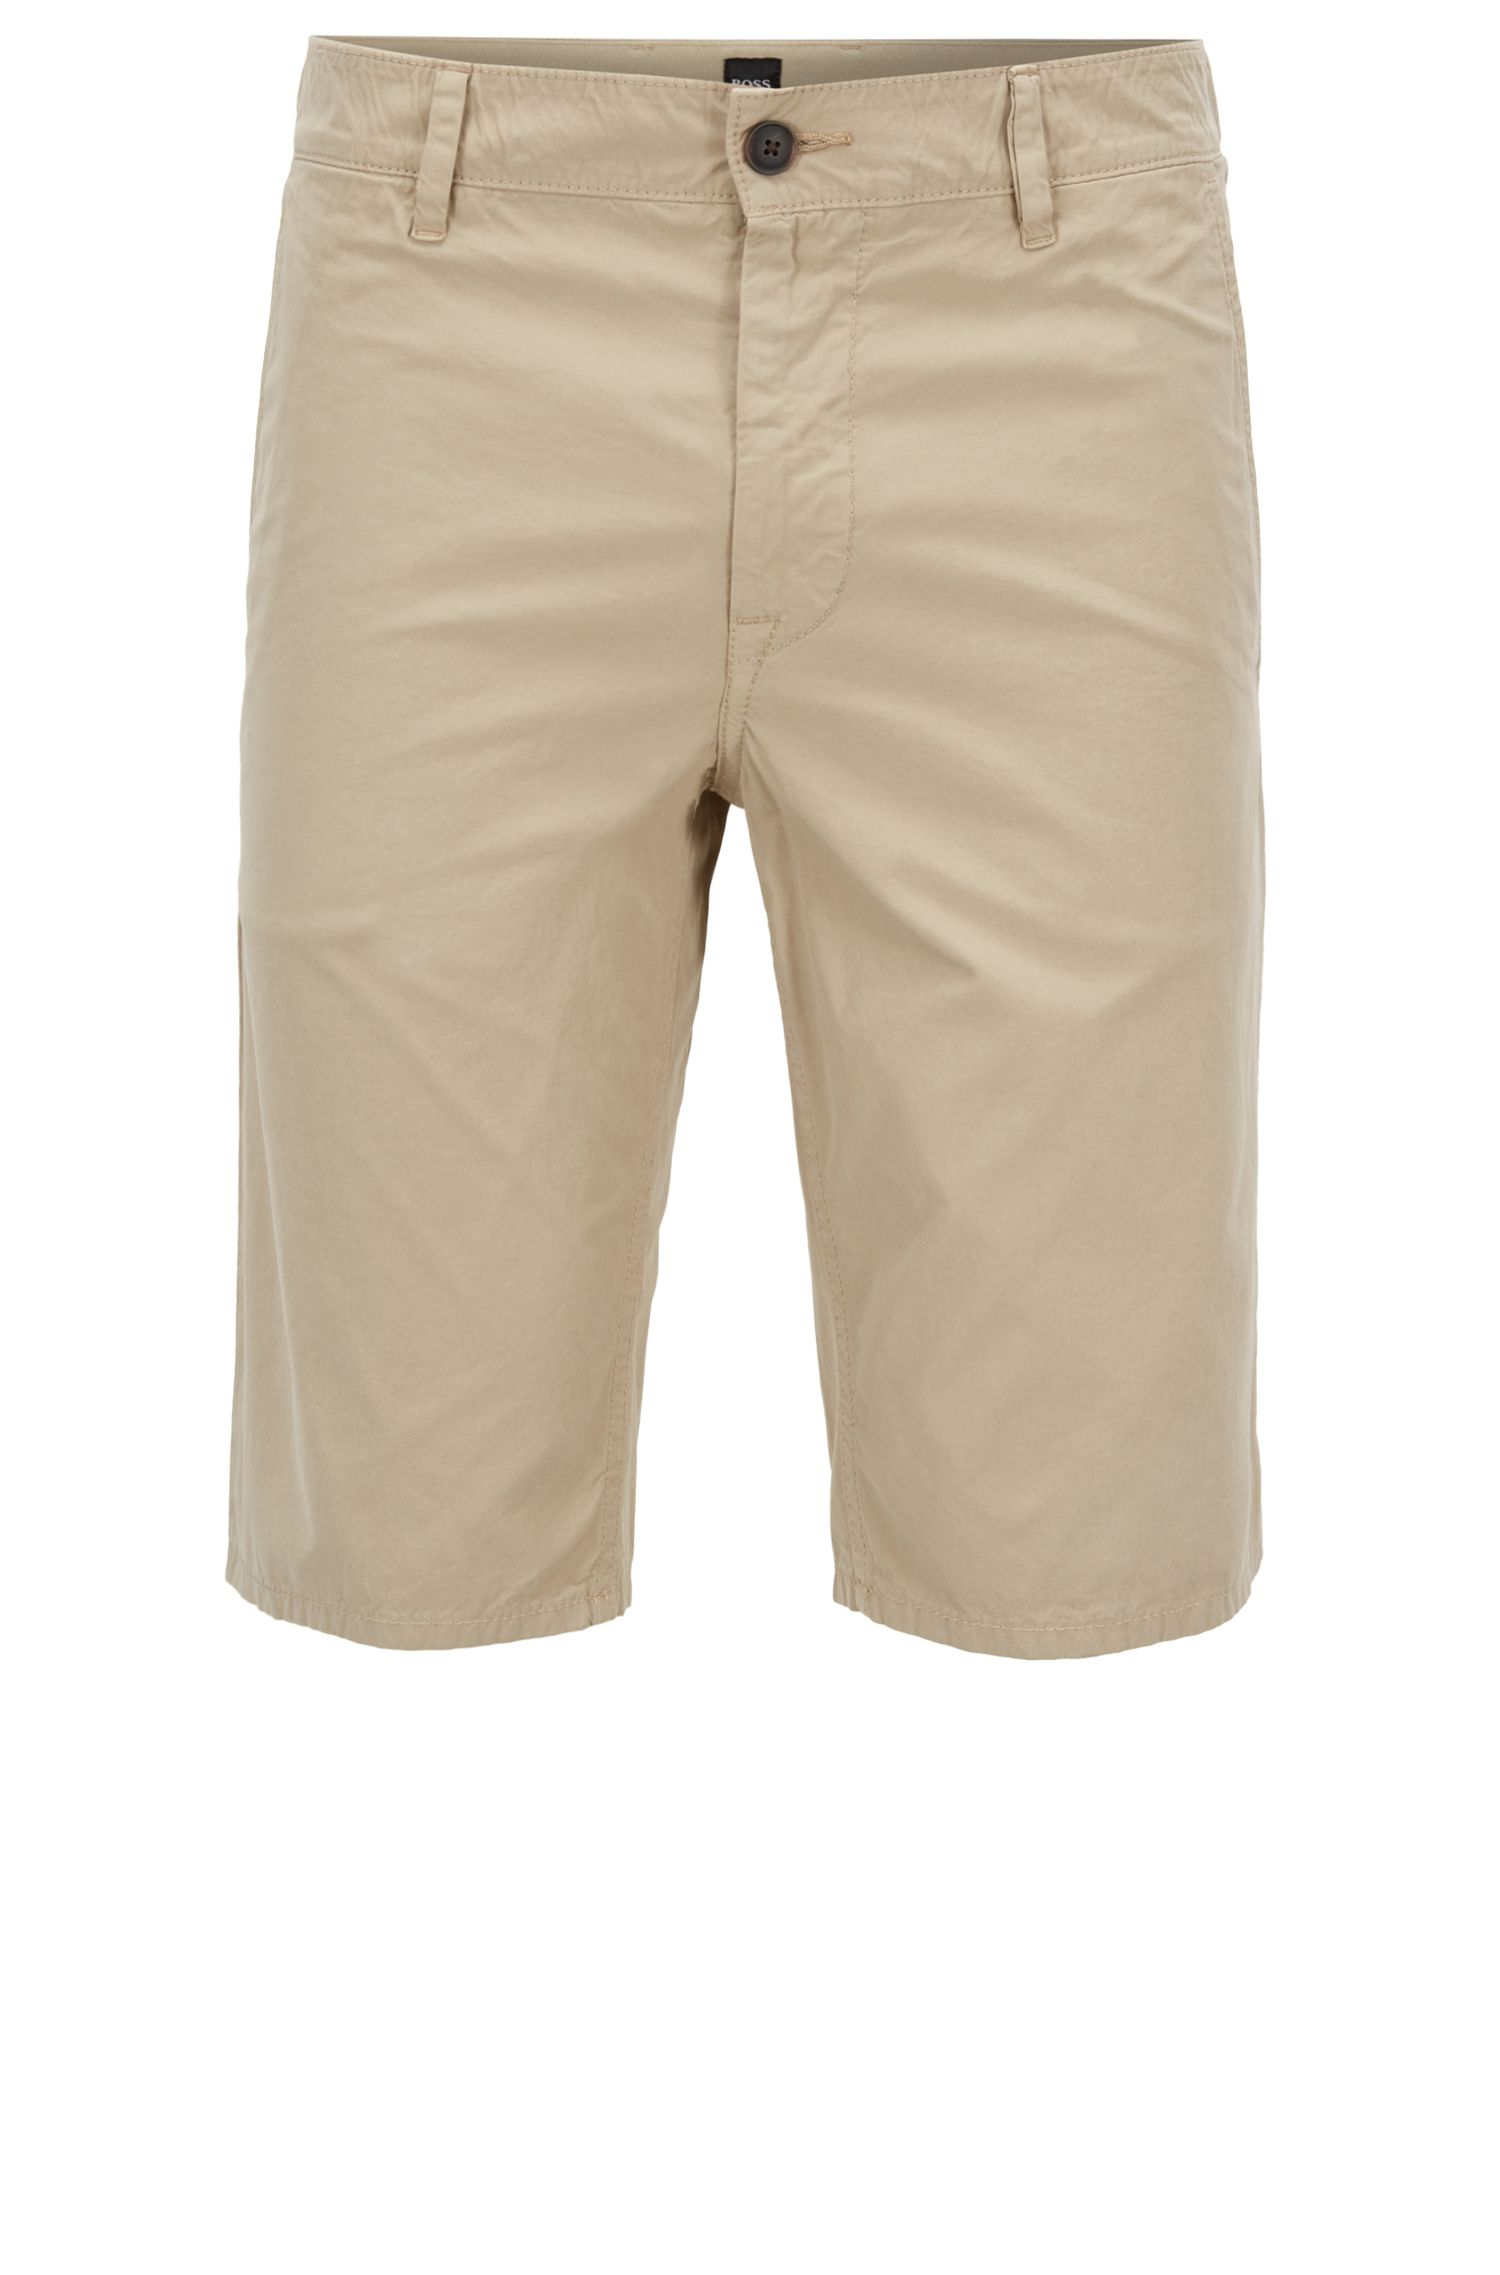 HUGO BOSS Short Slim Fit en popeline de coton surteint